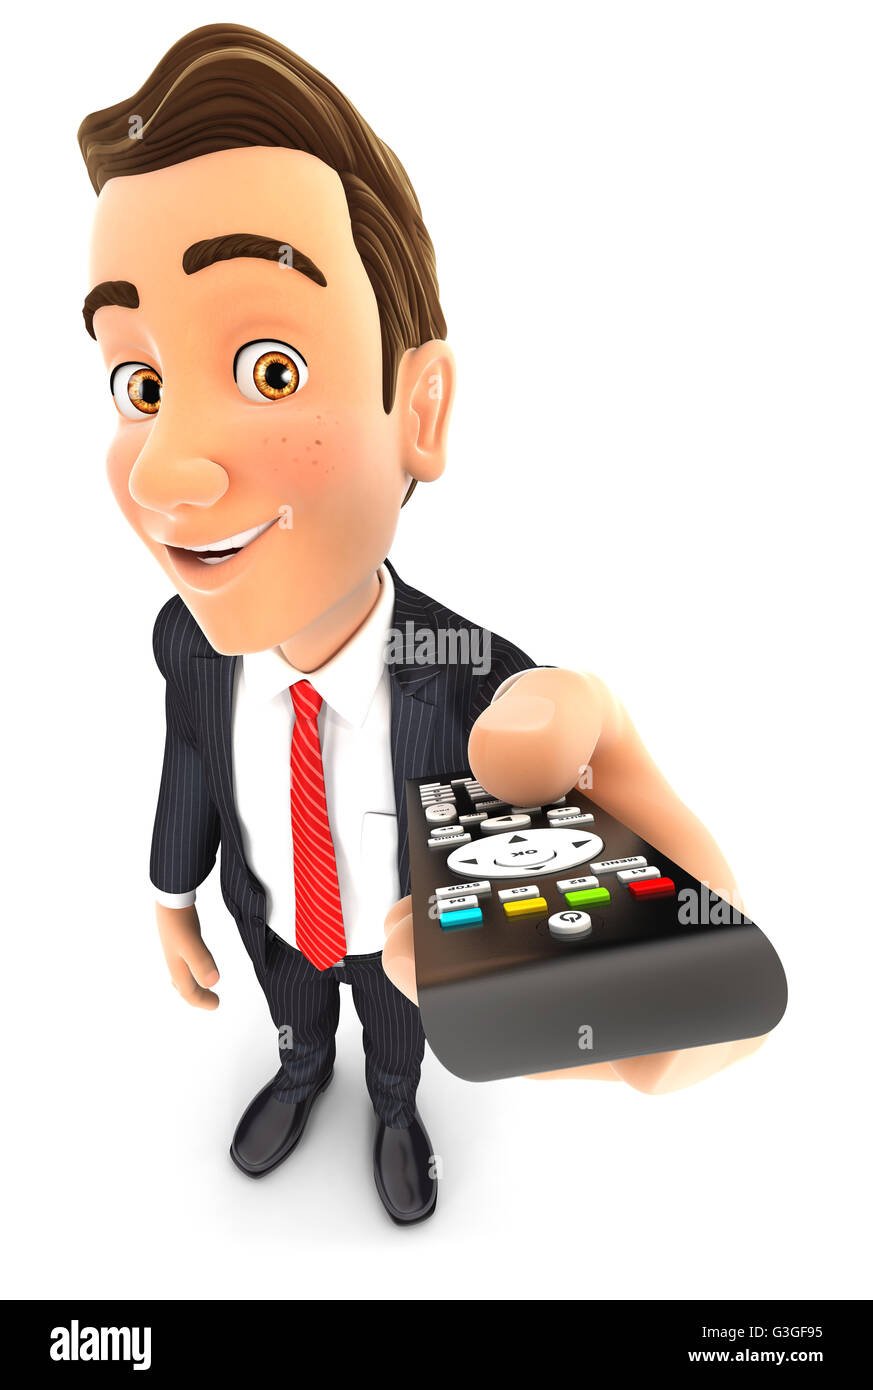 3d businessman holding television remote control, illustration with isolated white background Stock Photo